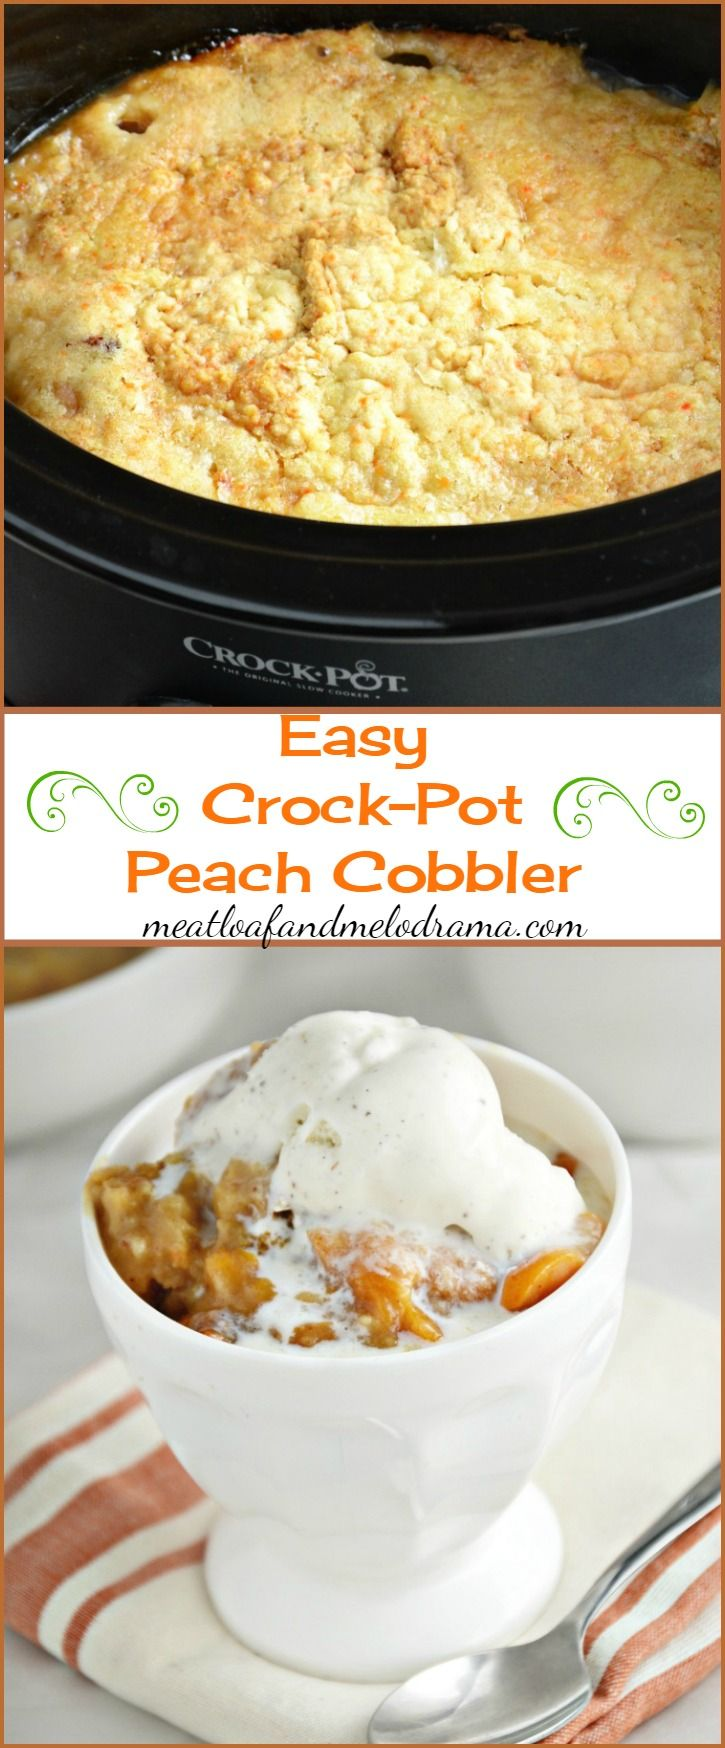 Easy Crock-Pot Peach Cobbler Recipe